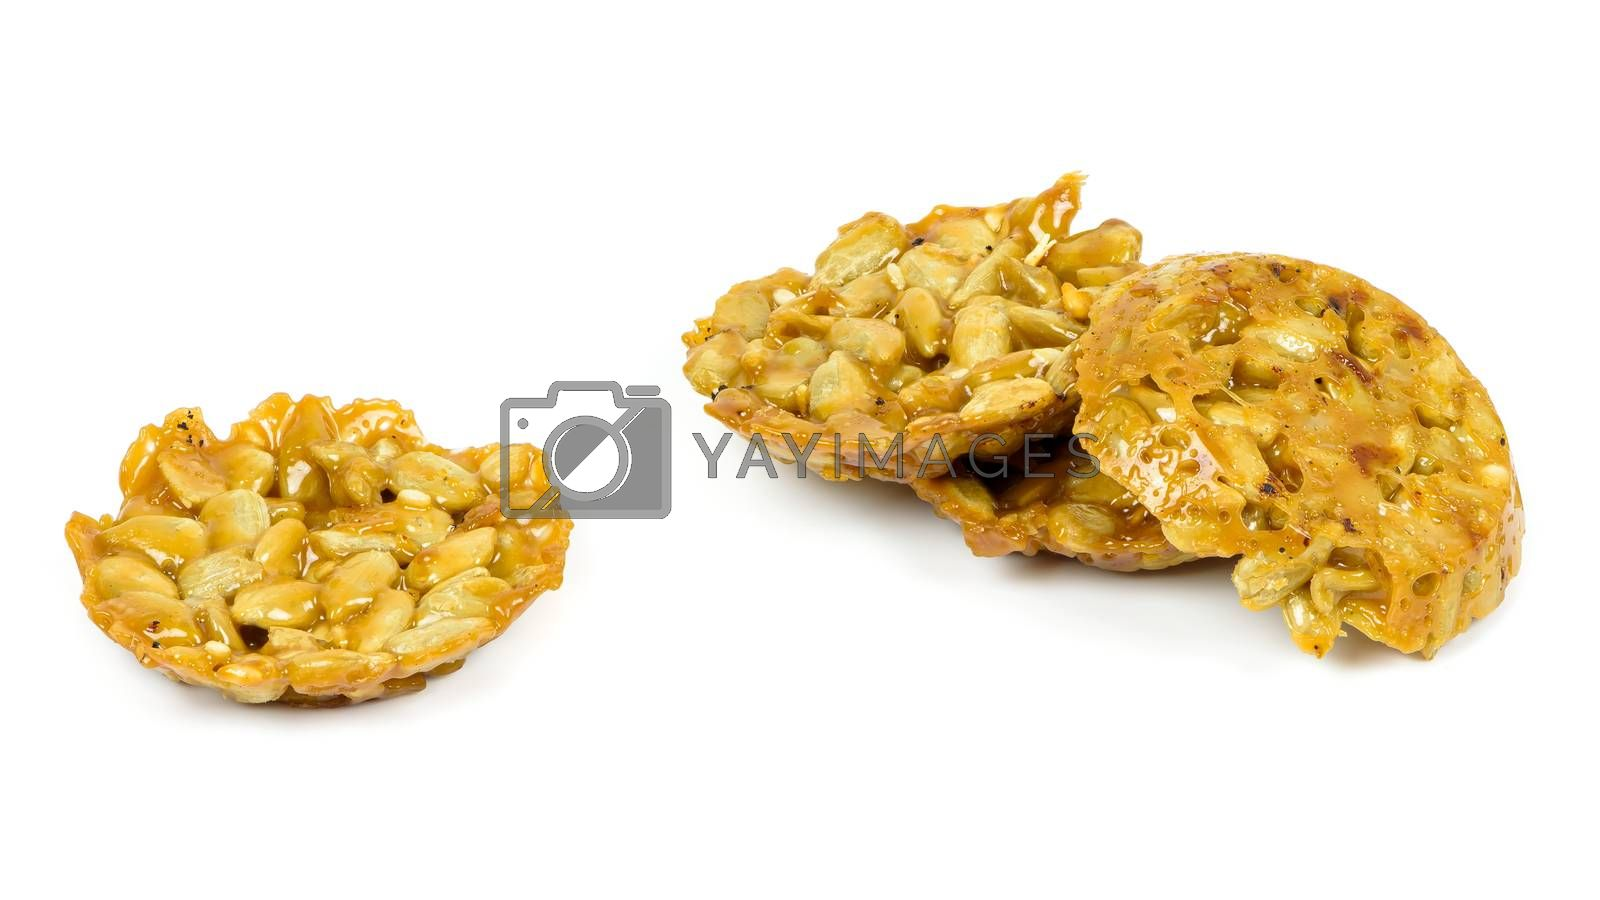 Florentine biscuit isolated on white background with clipping path